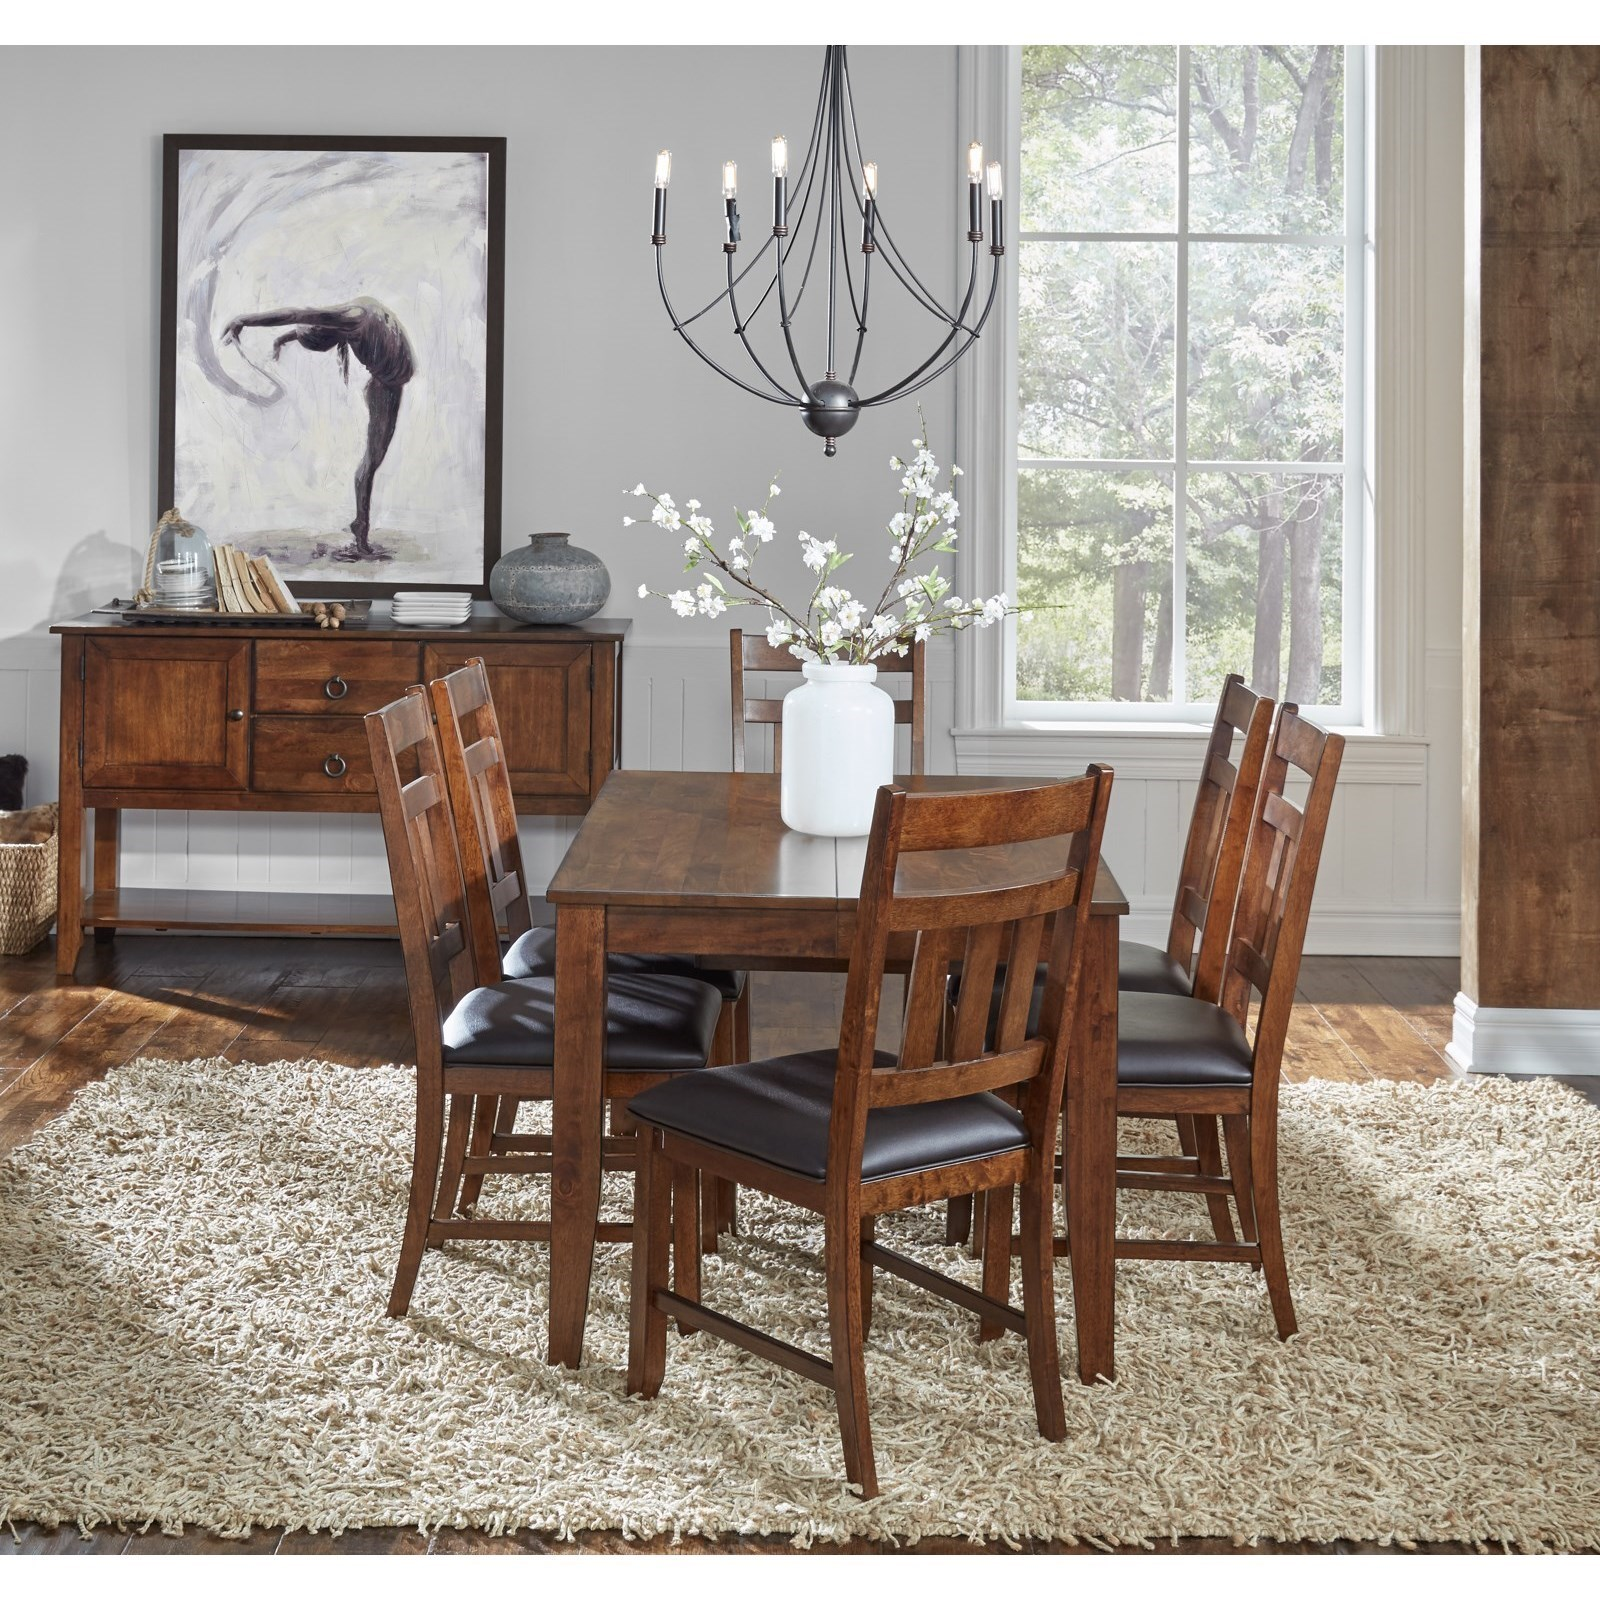 AAmerica Mason 7 Piece Square Butterfly Table and Chair  : products2Faamerica2Fcolor2Fmason 1147973043mas ma 6 50 02B6xmas ma 2 65 k b1jpgscalebothampwidth500ampheight500ampfsharpen25ampdown from www.valuecitynj.com size 500 x 500 jpeg 82kB